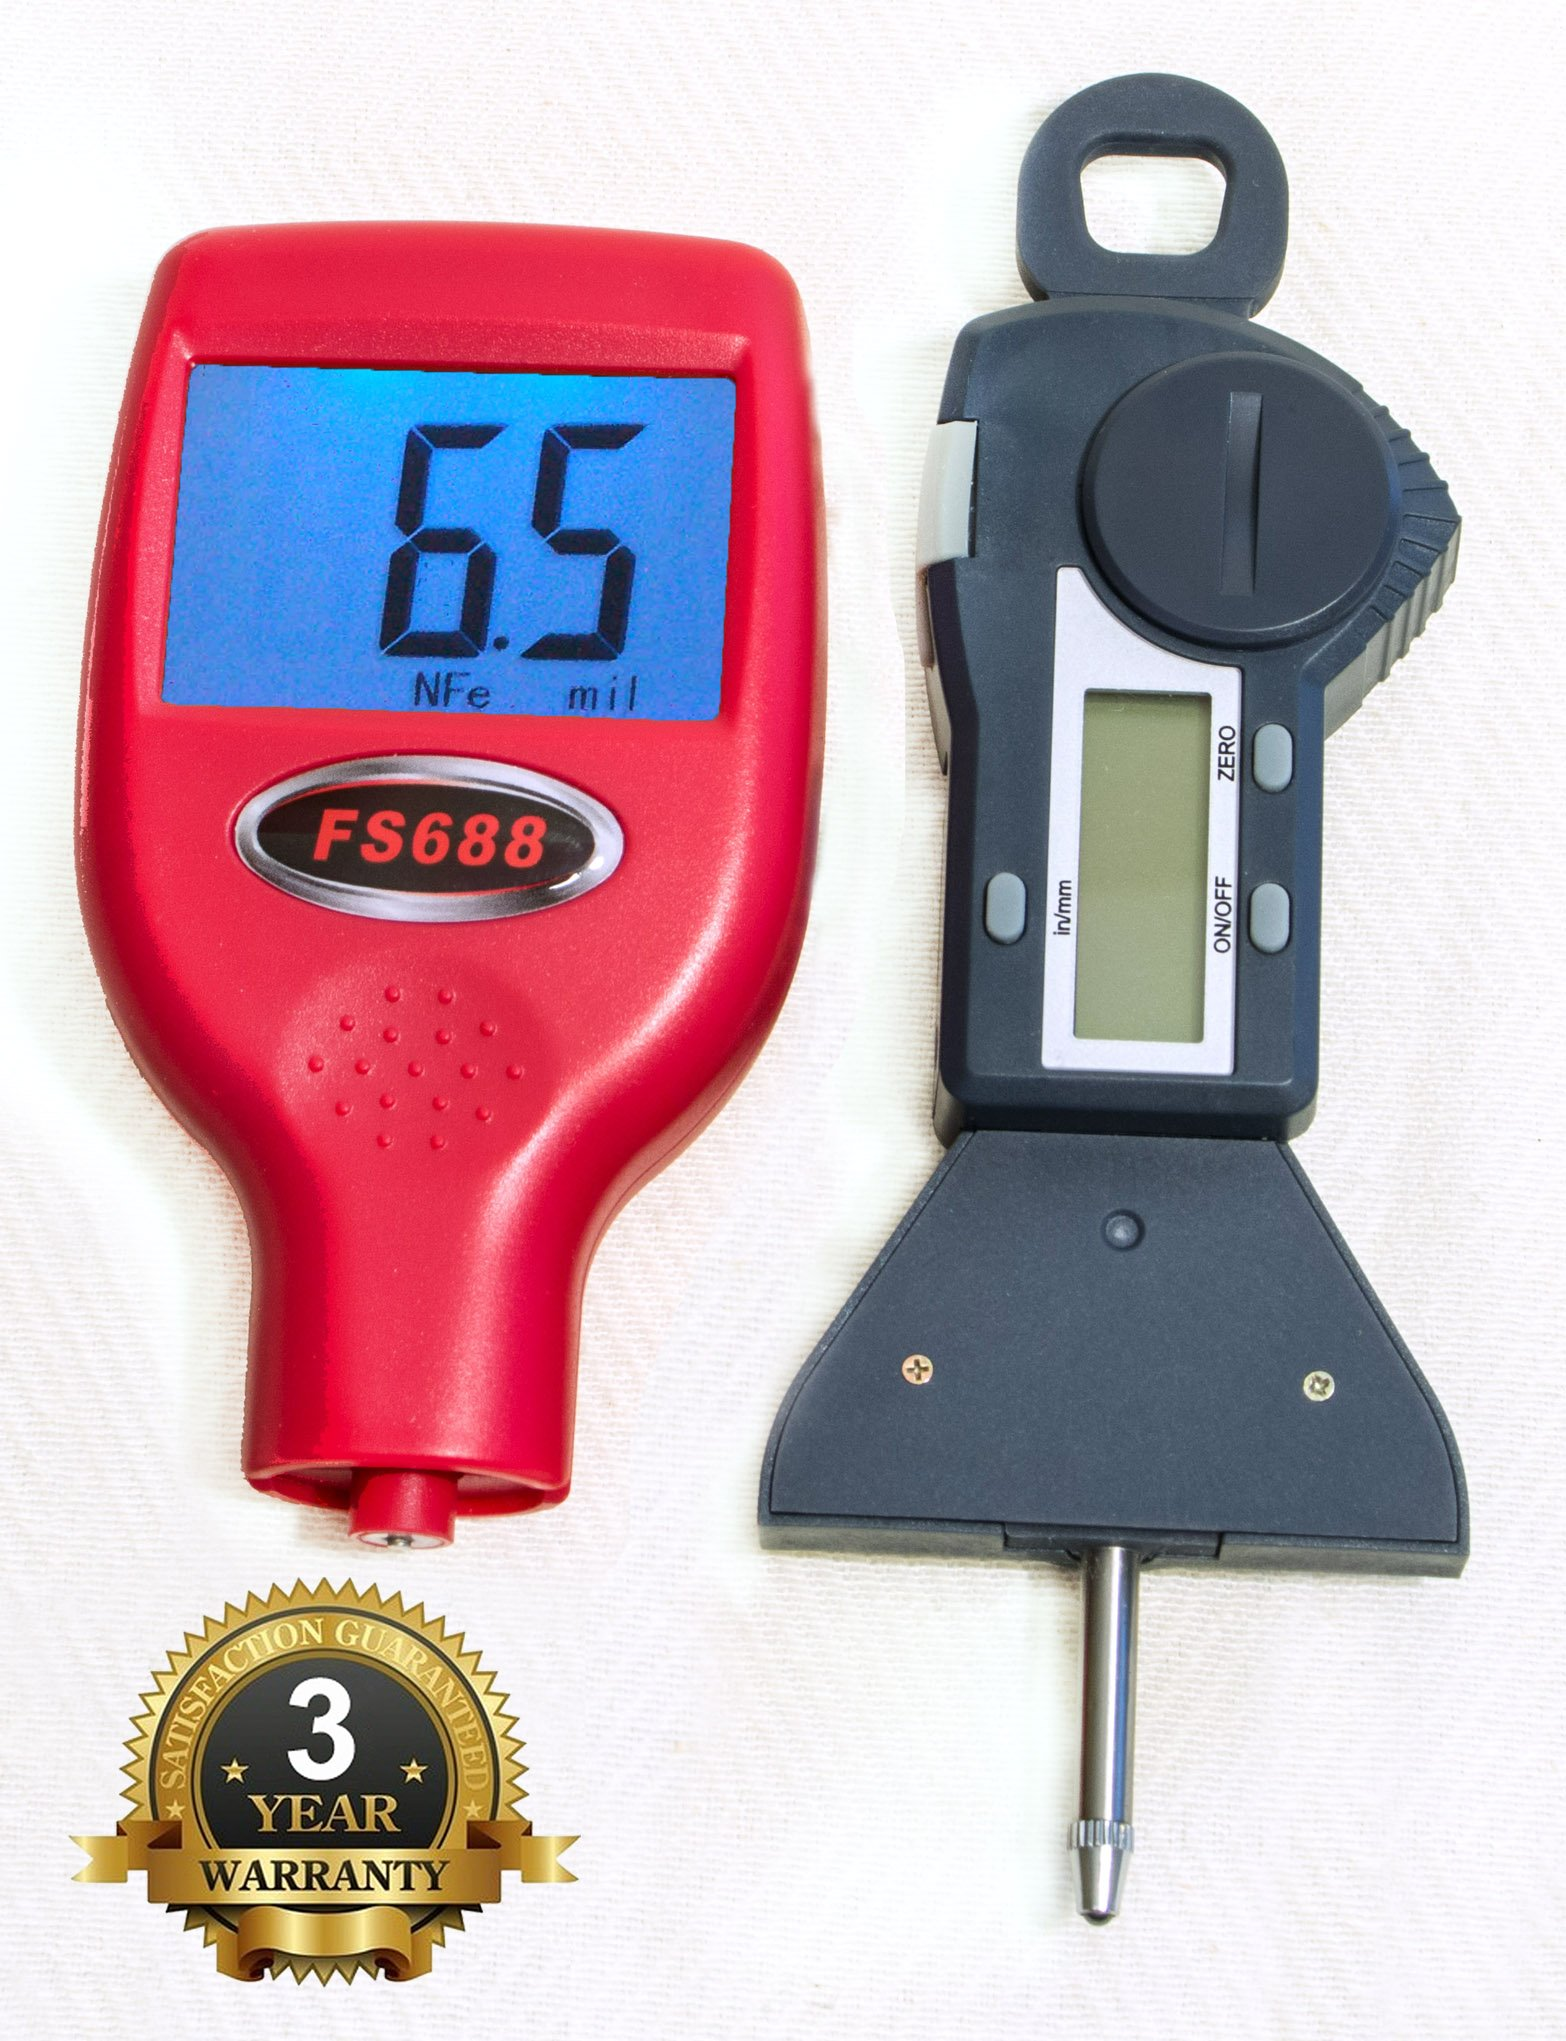 FenderSplendor FS688 Paint Meter with Digital Tire Gage, 15000 Sold. Warrantied in the USA . 3 Year Exchange Warranty. Avoid $3000 Losses by Missing Paintwork. by FenderSplendor